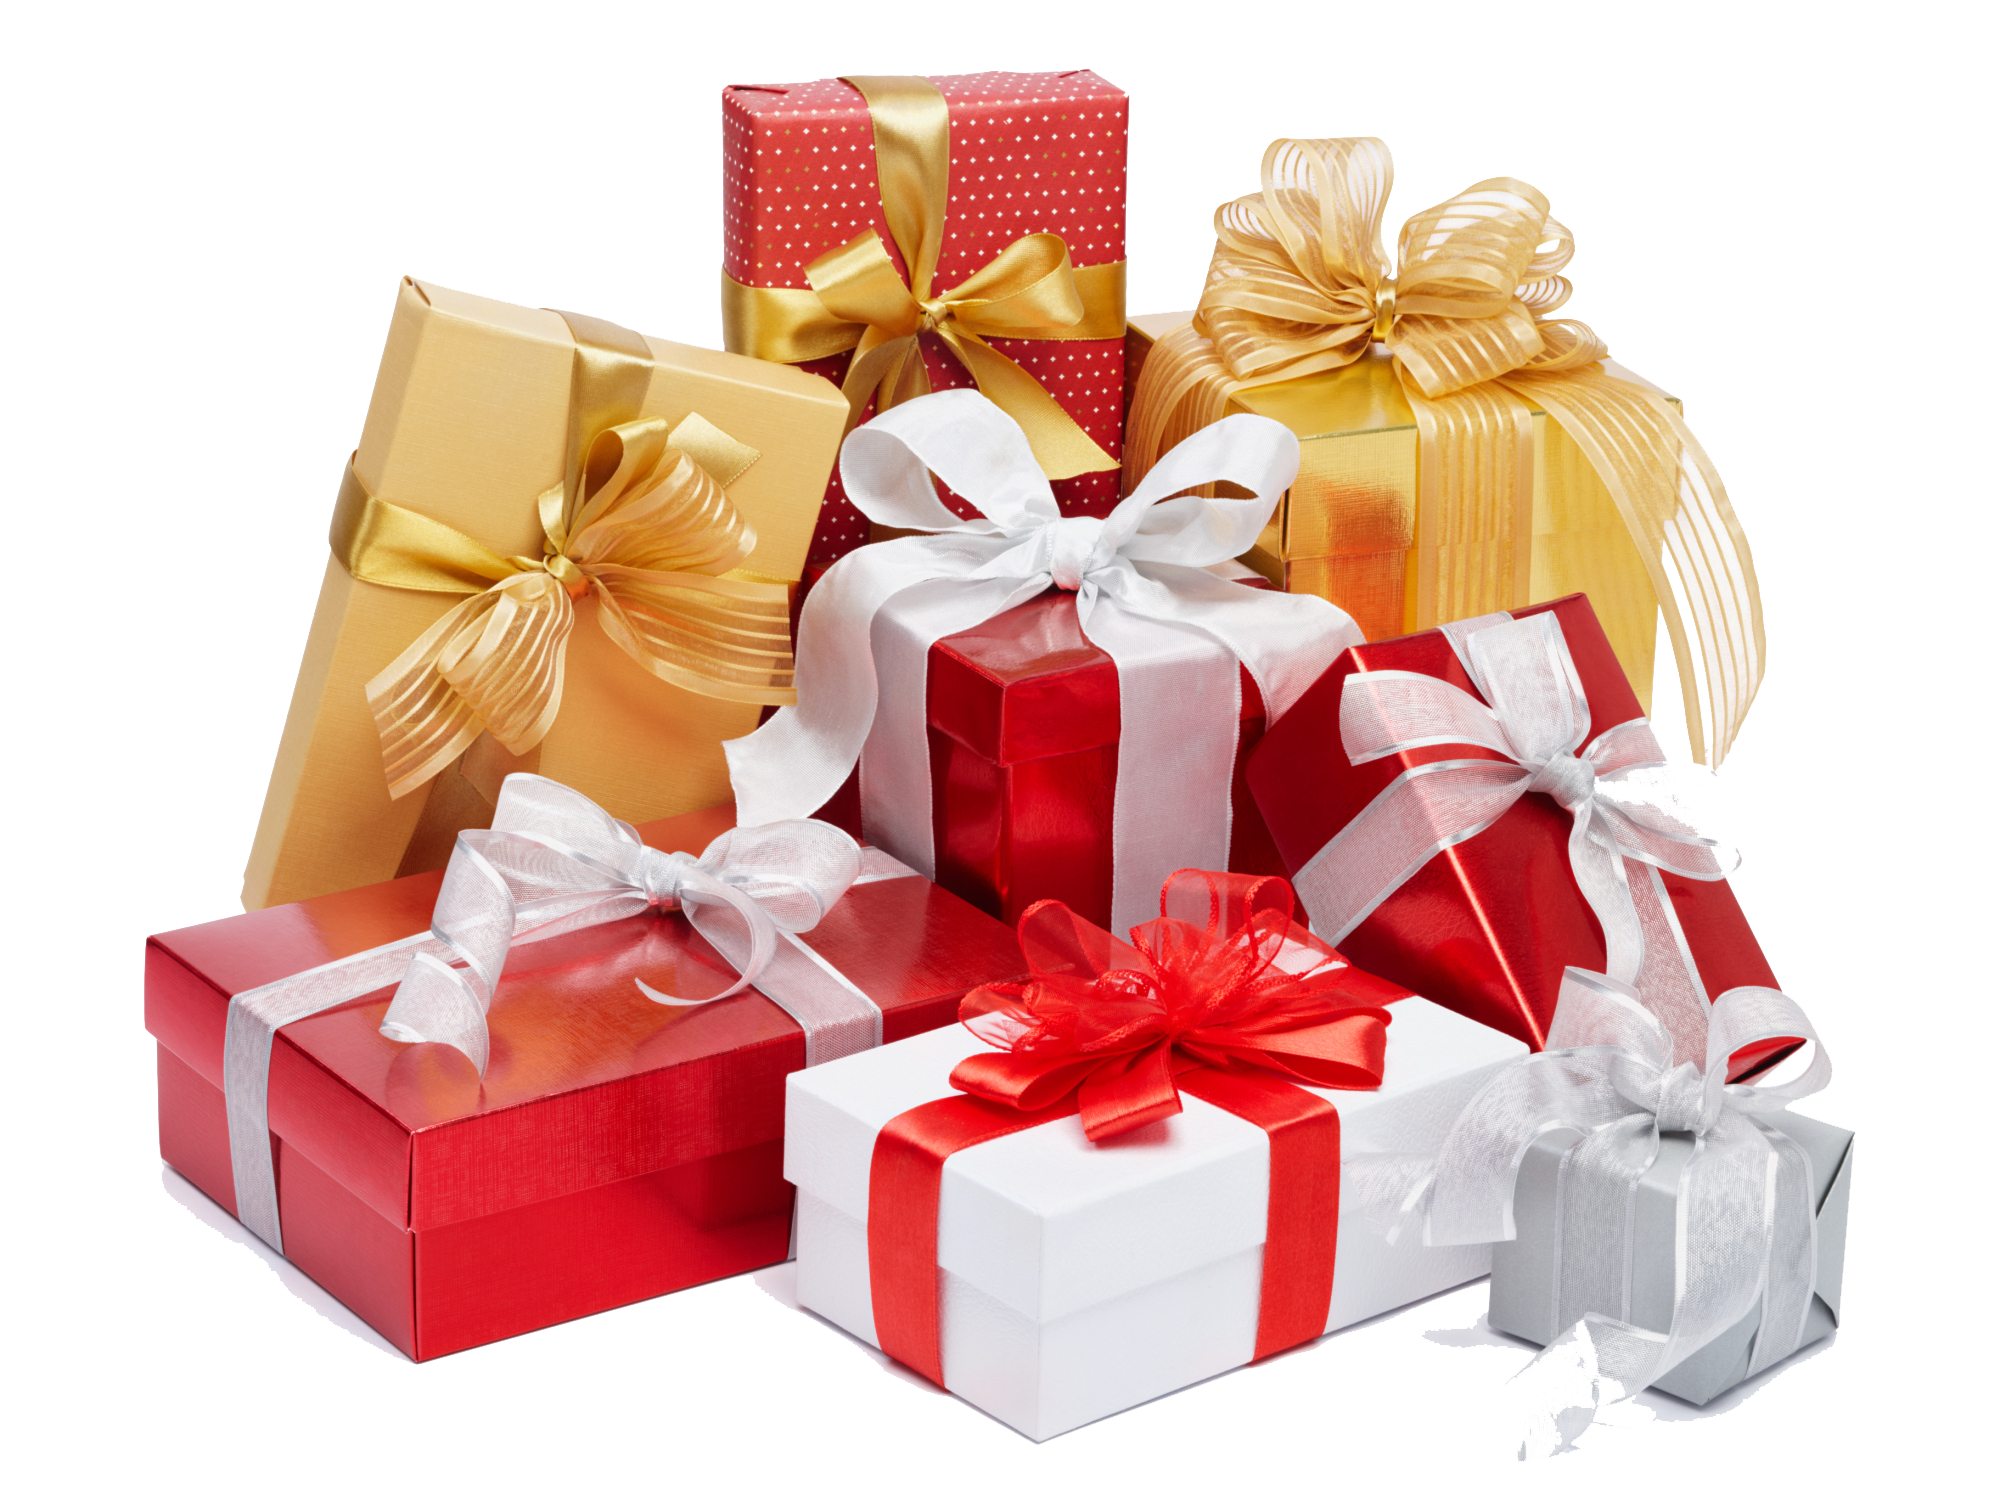 Gifts PNG Free Background.